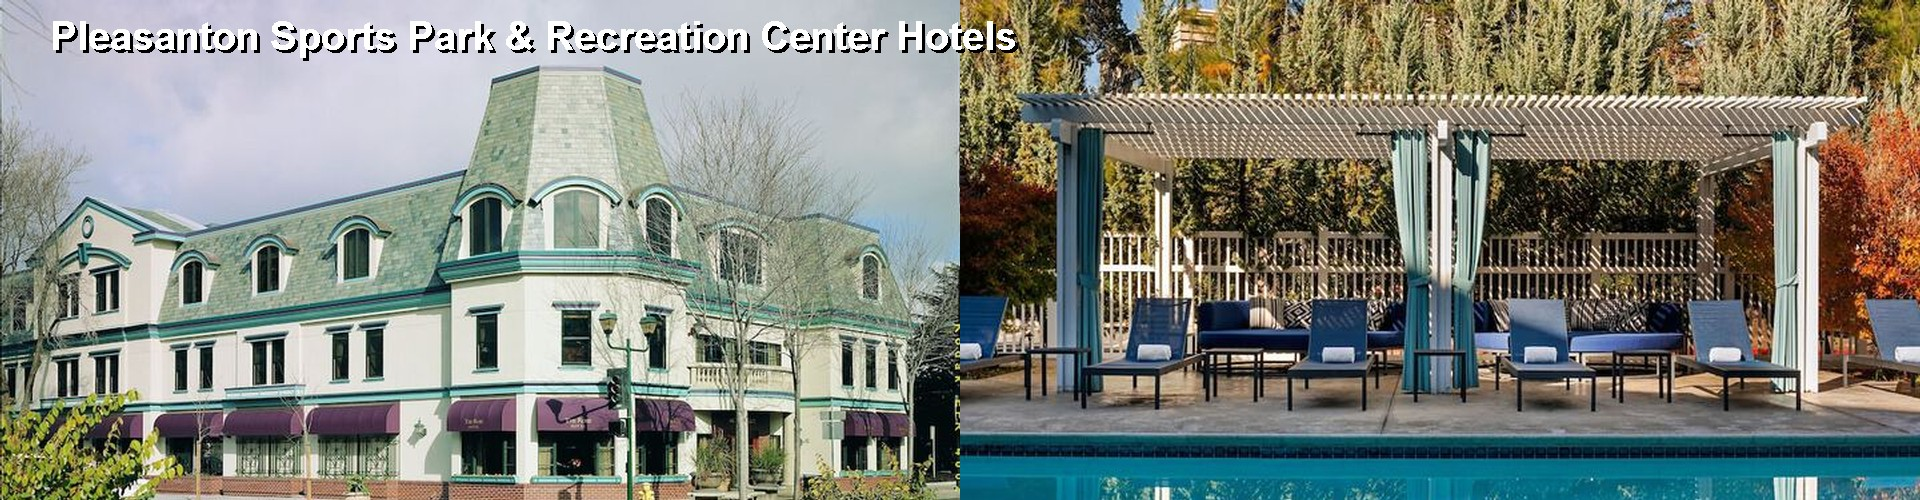 5 Best Hotels near Pleasanton Sports Park & Recreation Center